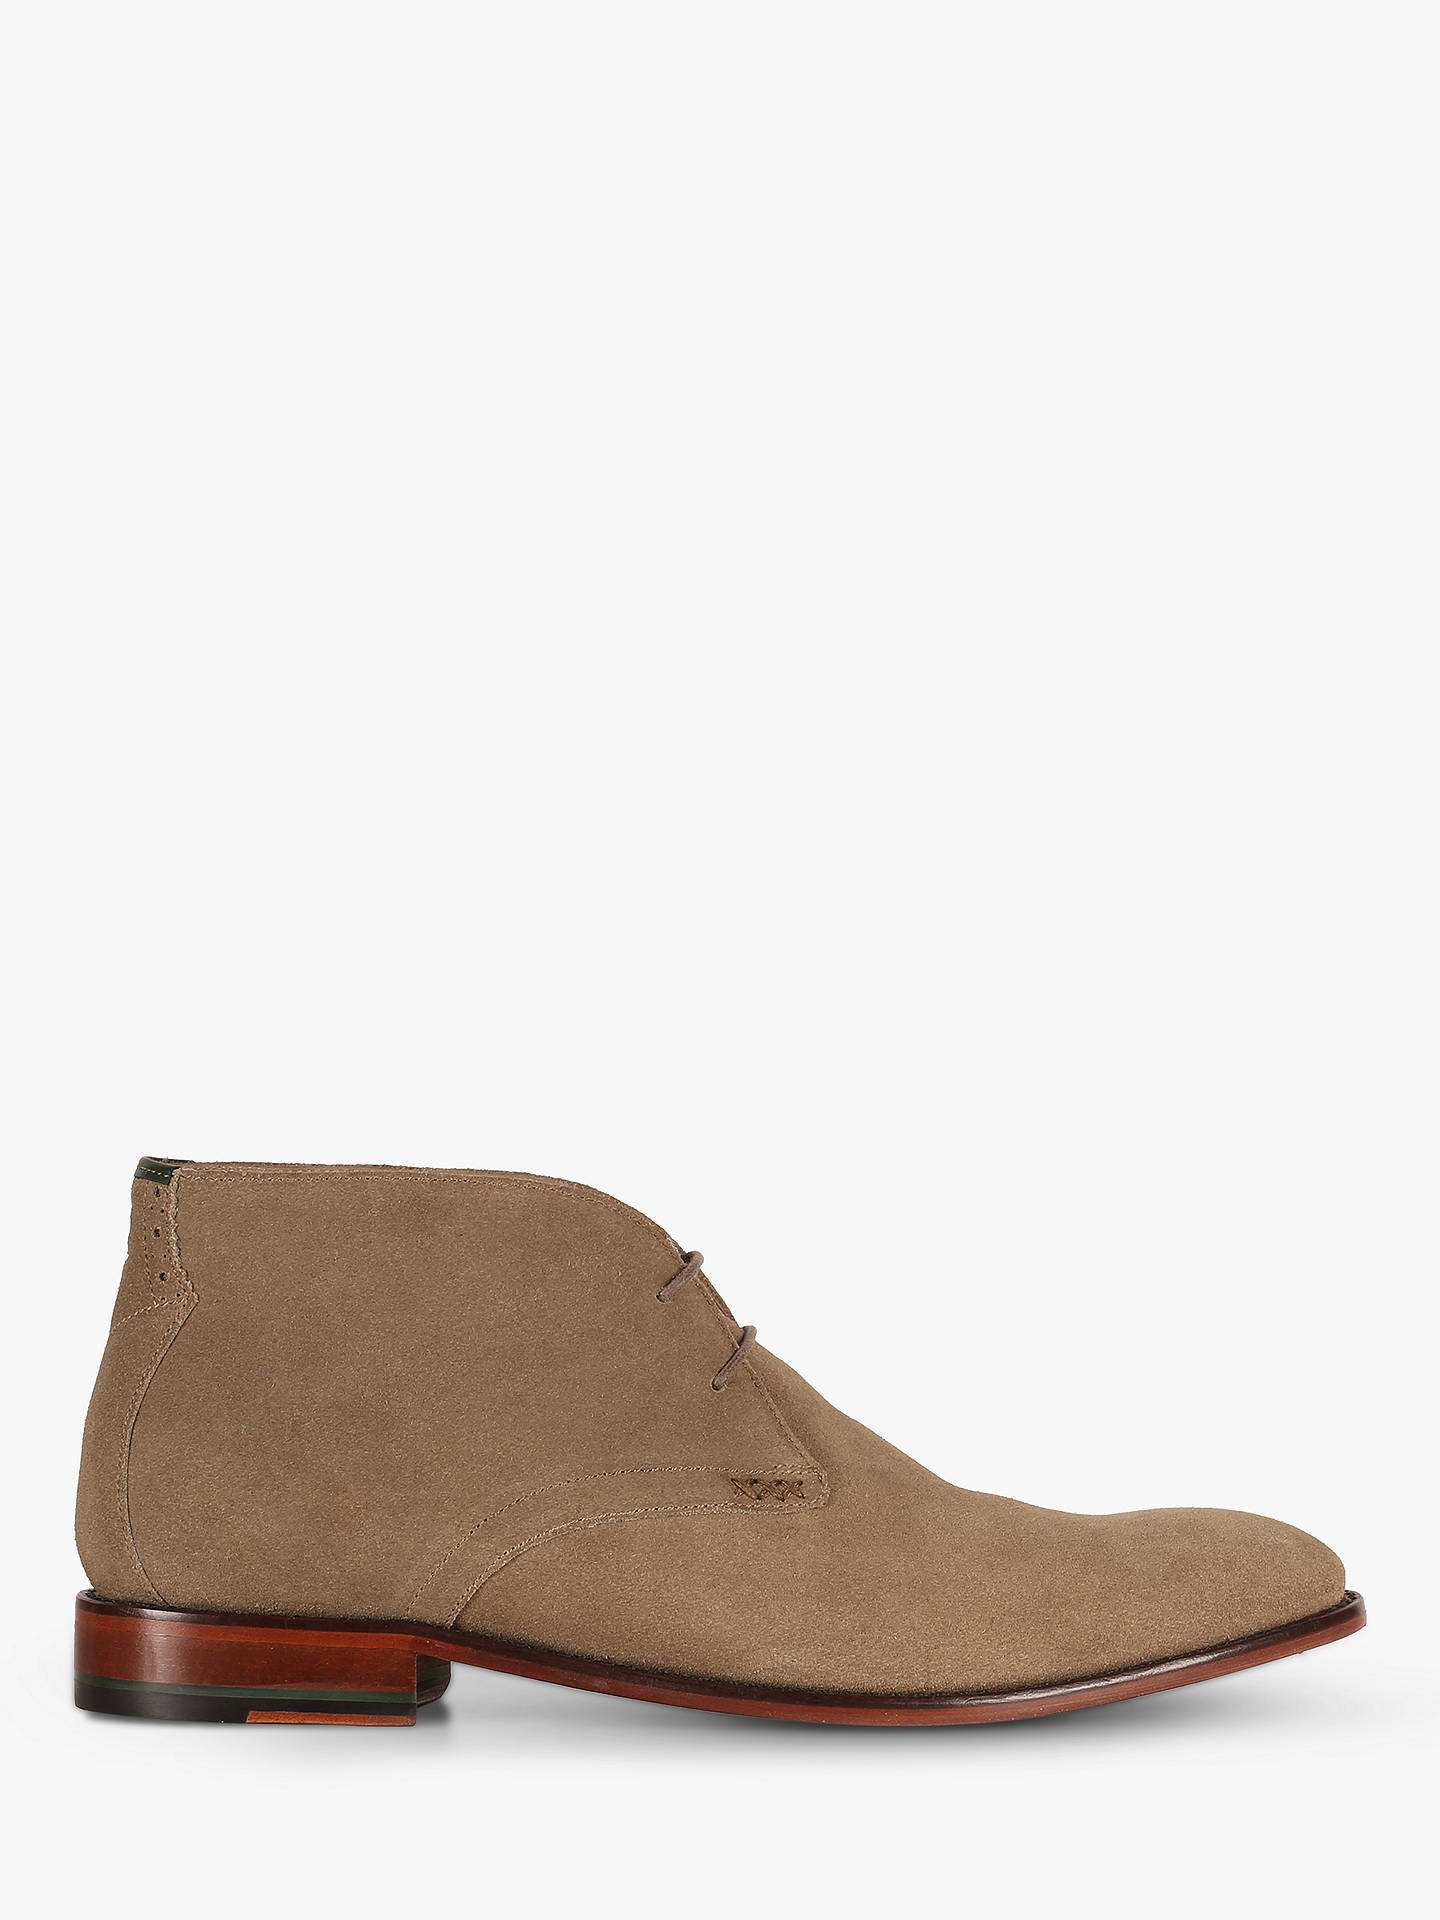 5cdafaa393 Buy Oliver Sweeney Waddell Suede Chukka Boots, Sand, 11 Online at  johnlewis.com ...